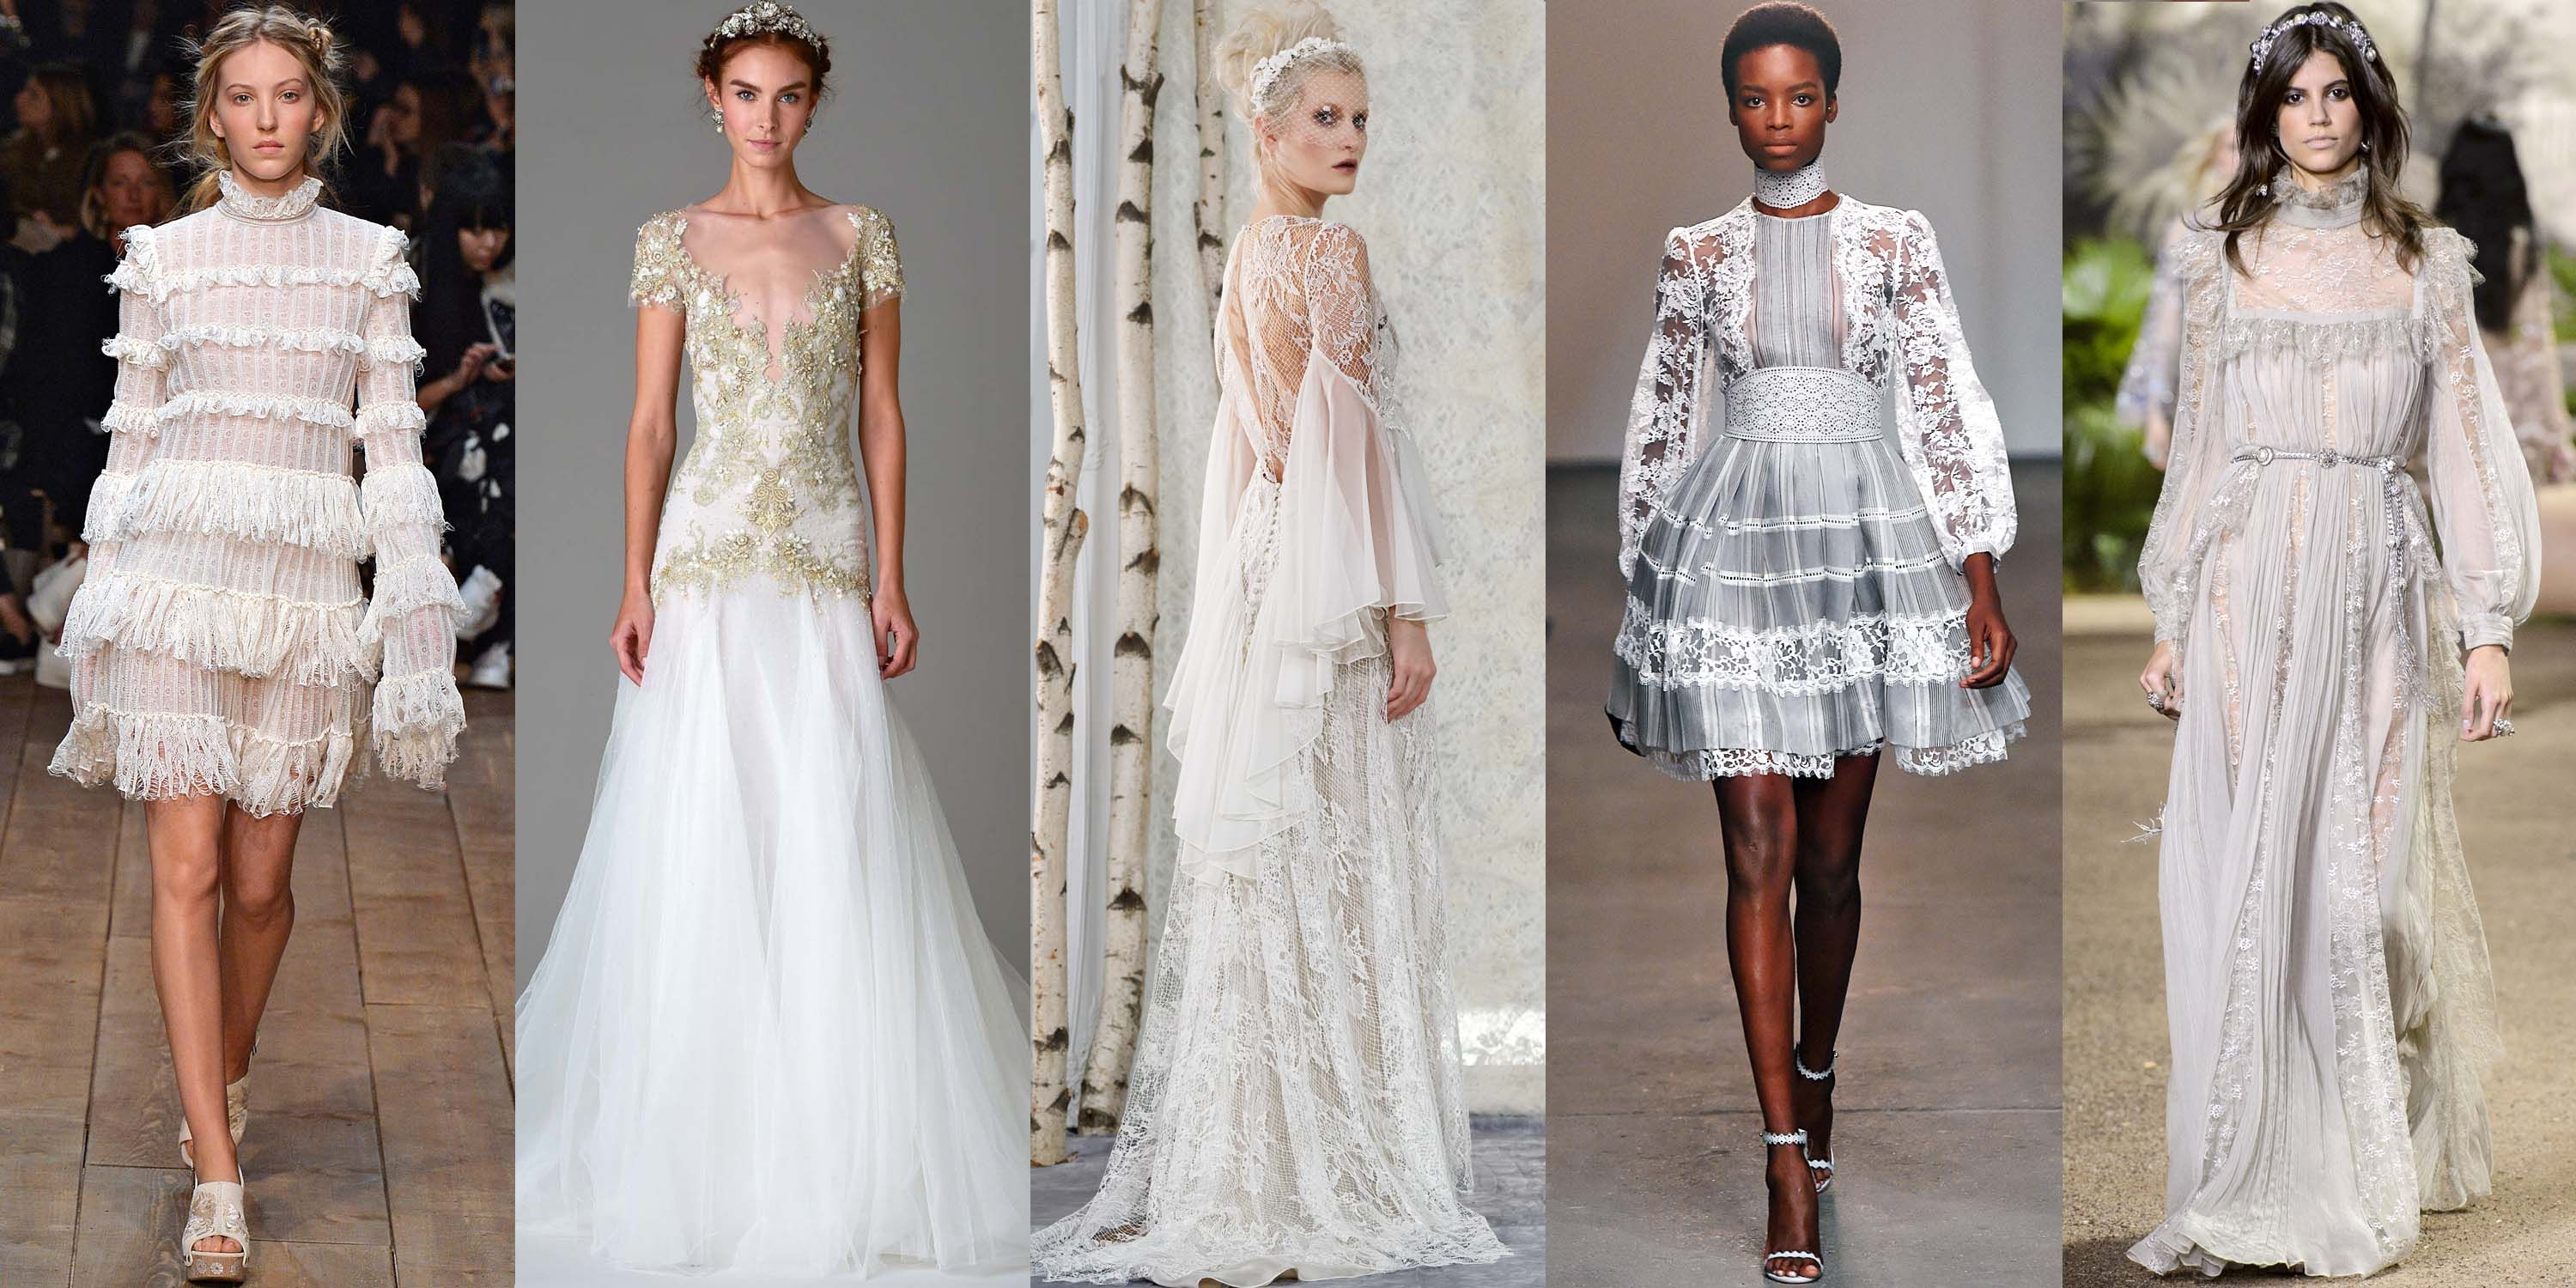 <p>Loads of gossamer lace, mock necklines, empire waistlines, gilded embroidery and blouson sleeves are telltale signs that you're doing this look justice. Embellishments like ruffles, soft tiers and floral motifs are par for the course when channeling today's version of old-school royalty.</p><p><em>Alexander McQueen Spring 2016&#x3B; Marchesa Bridal Fall 2016&#x3B; Elizabeth Fillmore Bridal Fall 2016&#x3B; Zimmermann Spring 2016&#x3B; Elie Saab Haute Couture Spring 2016.</em></p>